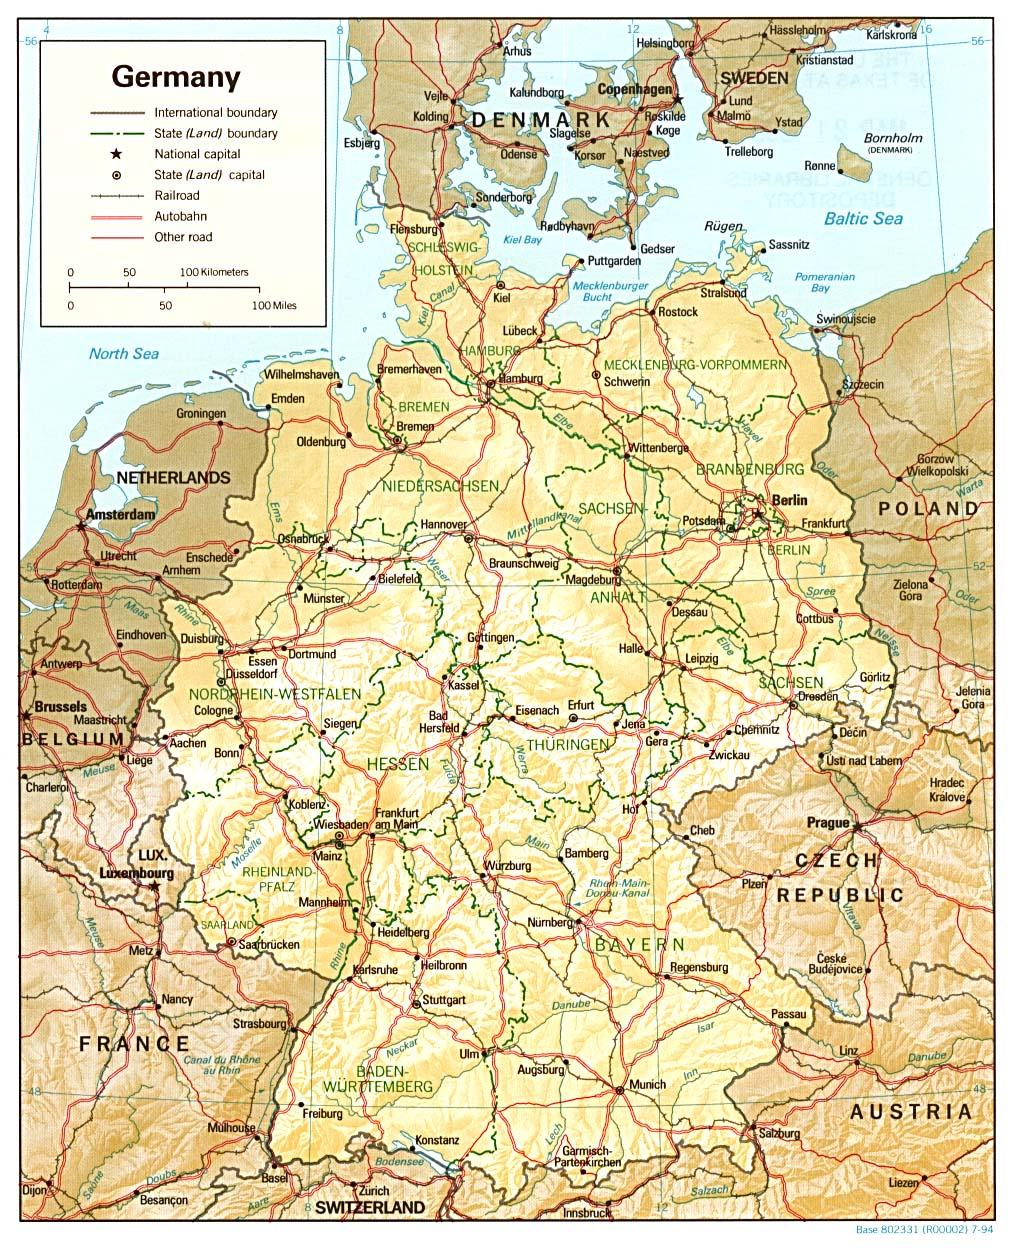 Germany map pdf - Download Germany map (Western Europe - Europe)